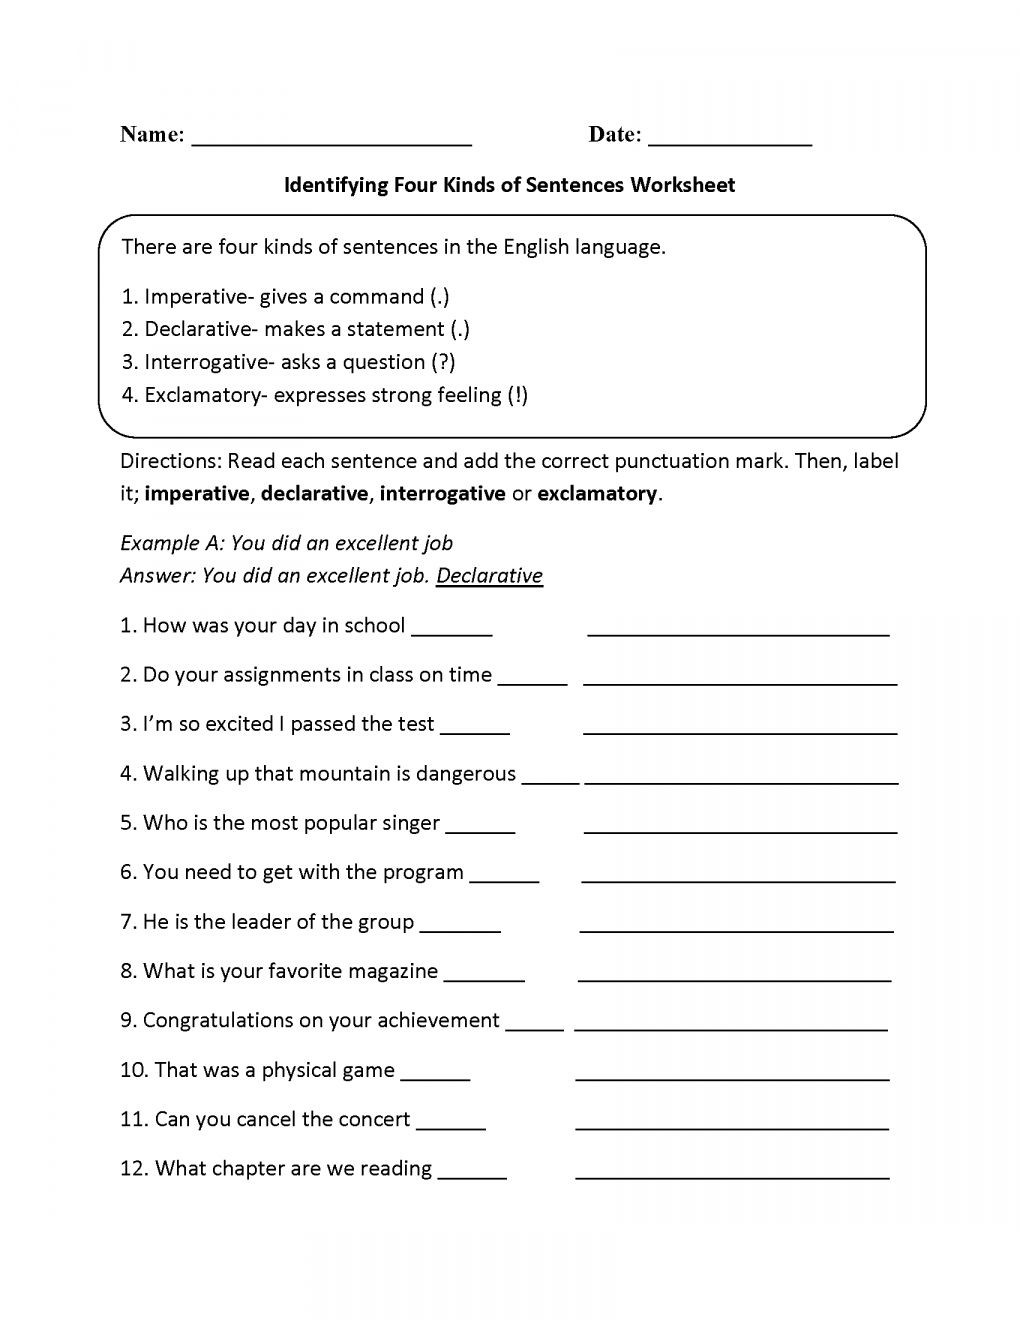 Punctuation Worksheets 5th Grade Learning Image by Kim Caso In 2020